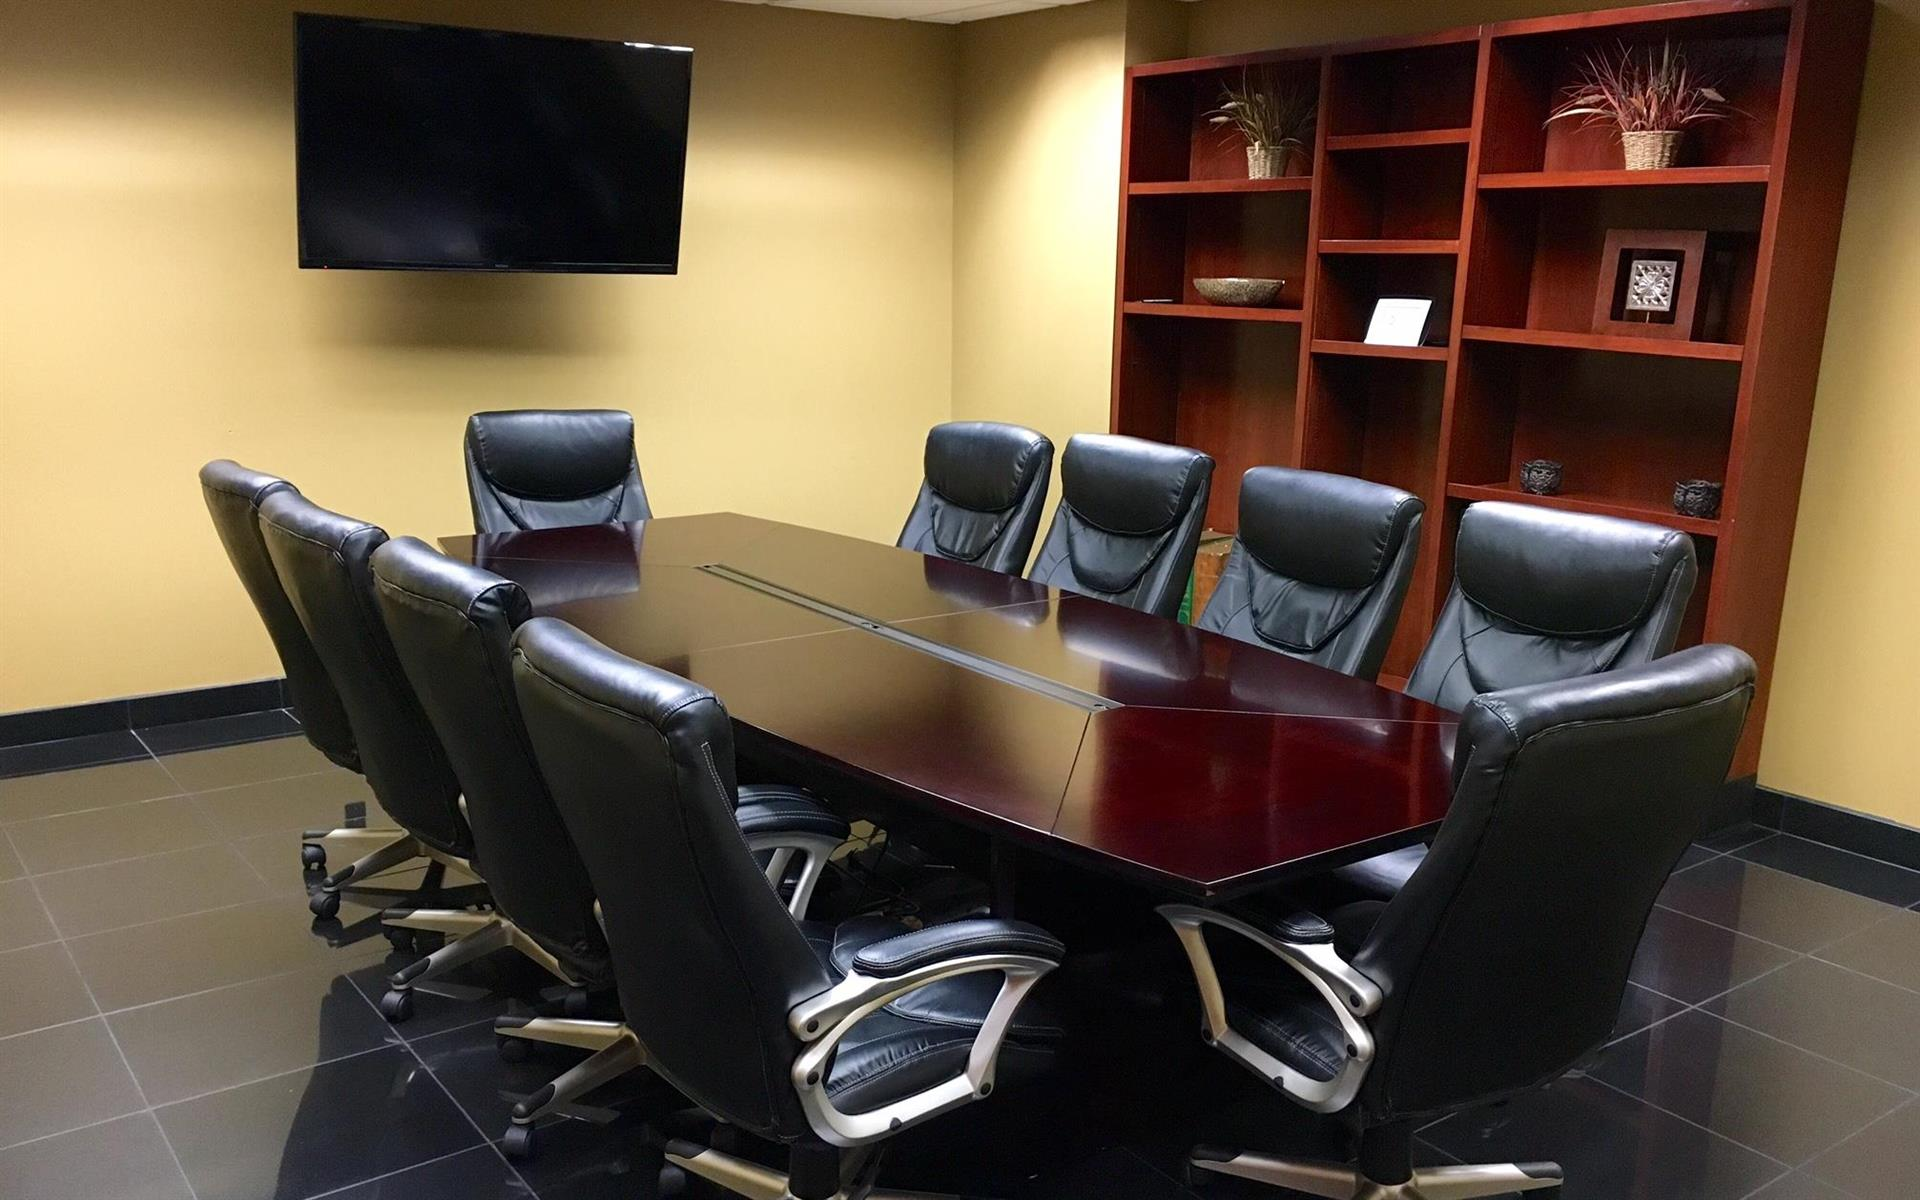 Union Centre Executive Offices and Conference Center - Conference Room - s1000